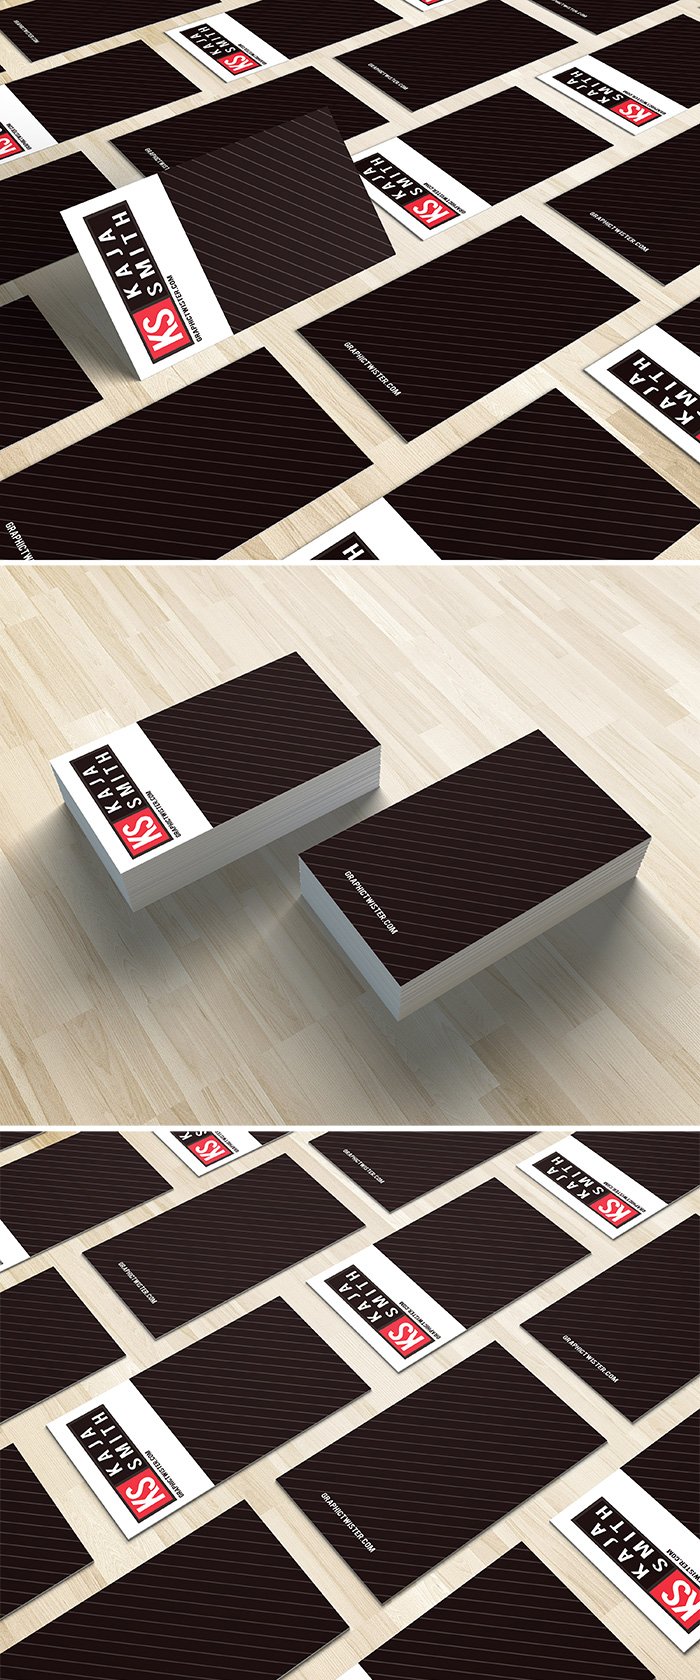 100+ Best Business Card Mock-ups For Free Download - Page 4 of 7 ...